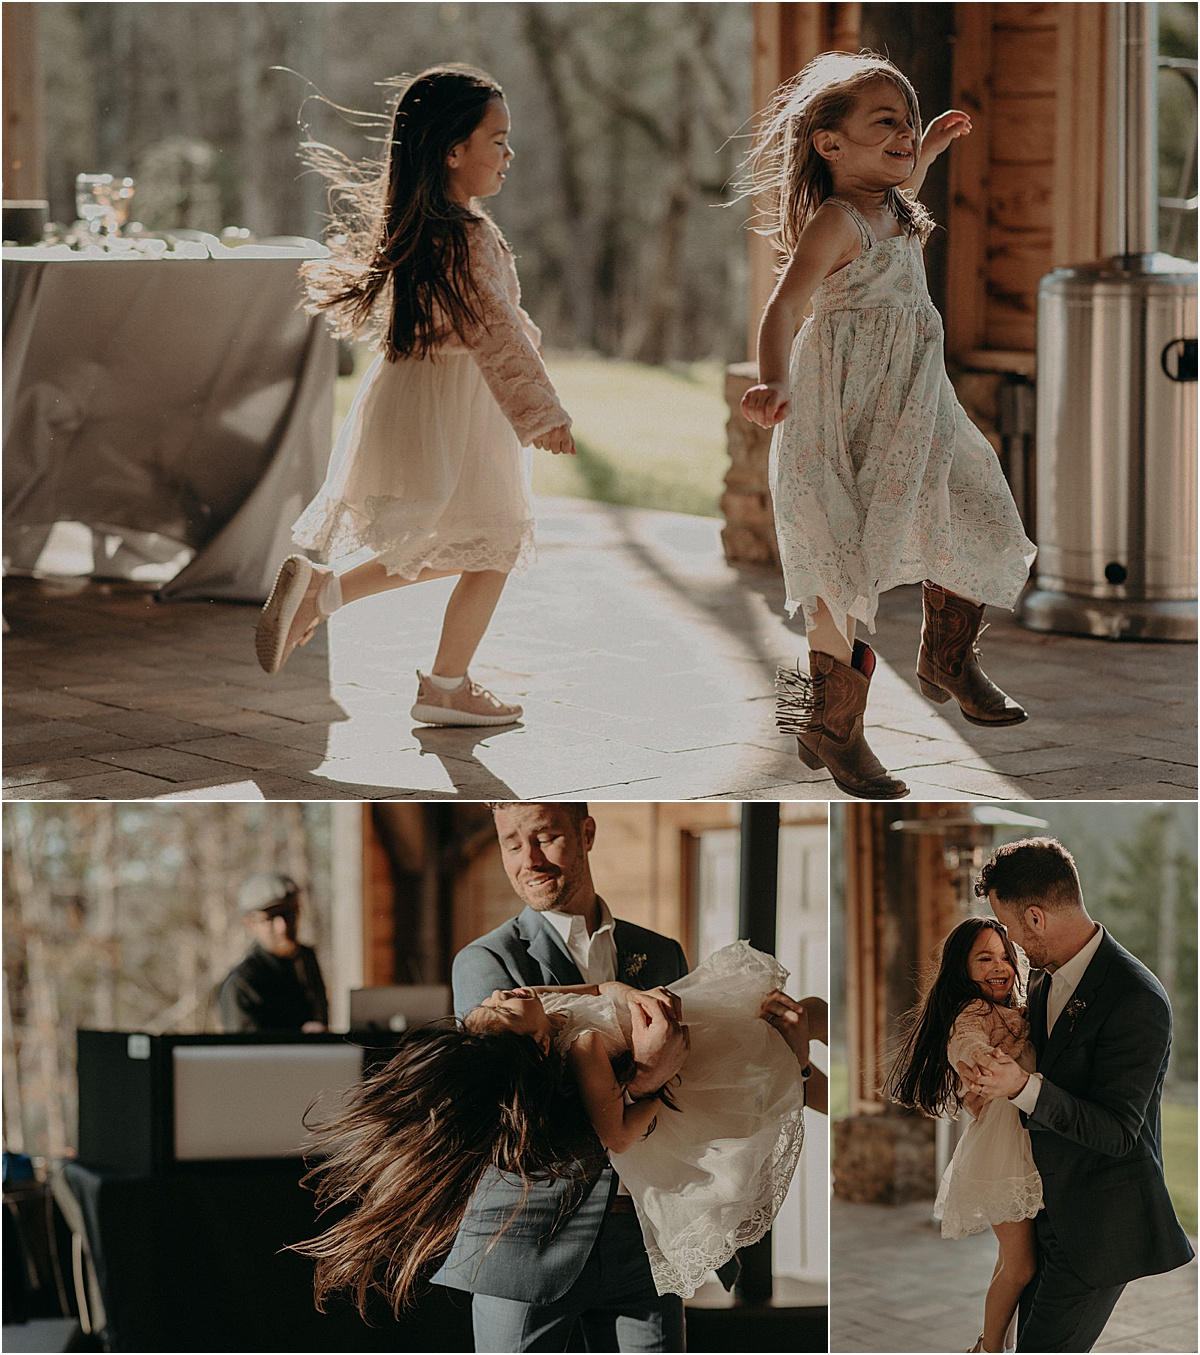 little girls dancing with groom after wedding ceremony